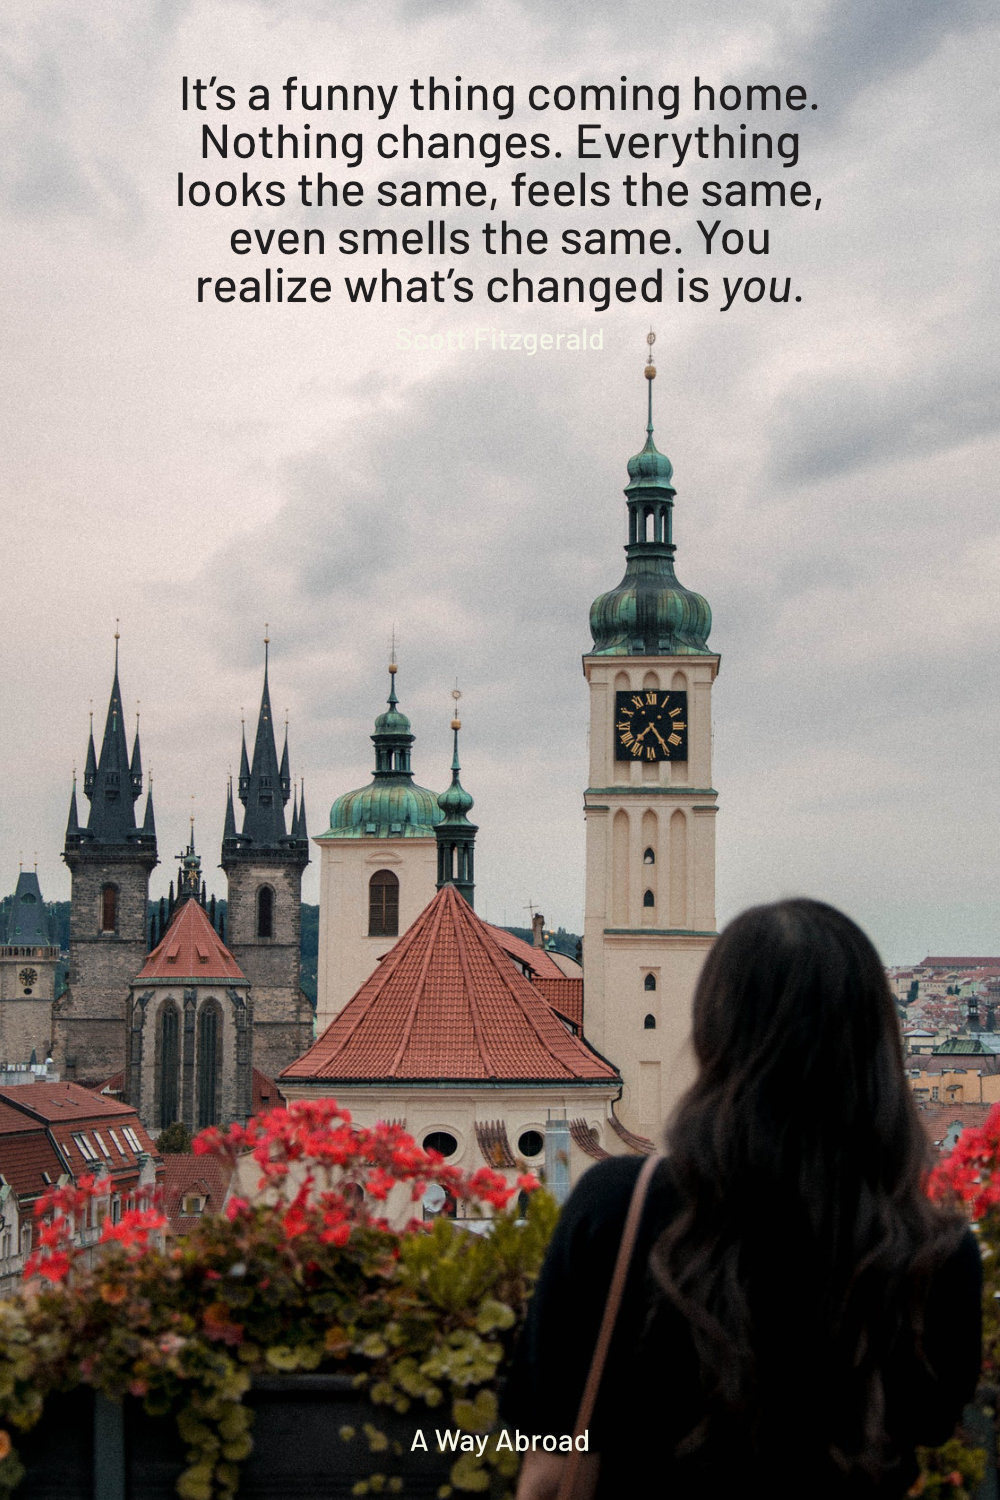 a woman overlooking a historic building in the Czech Reublic